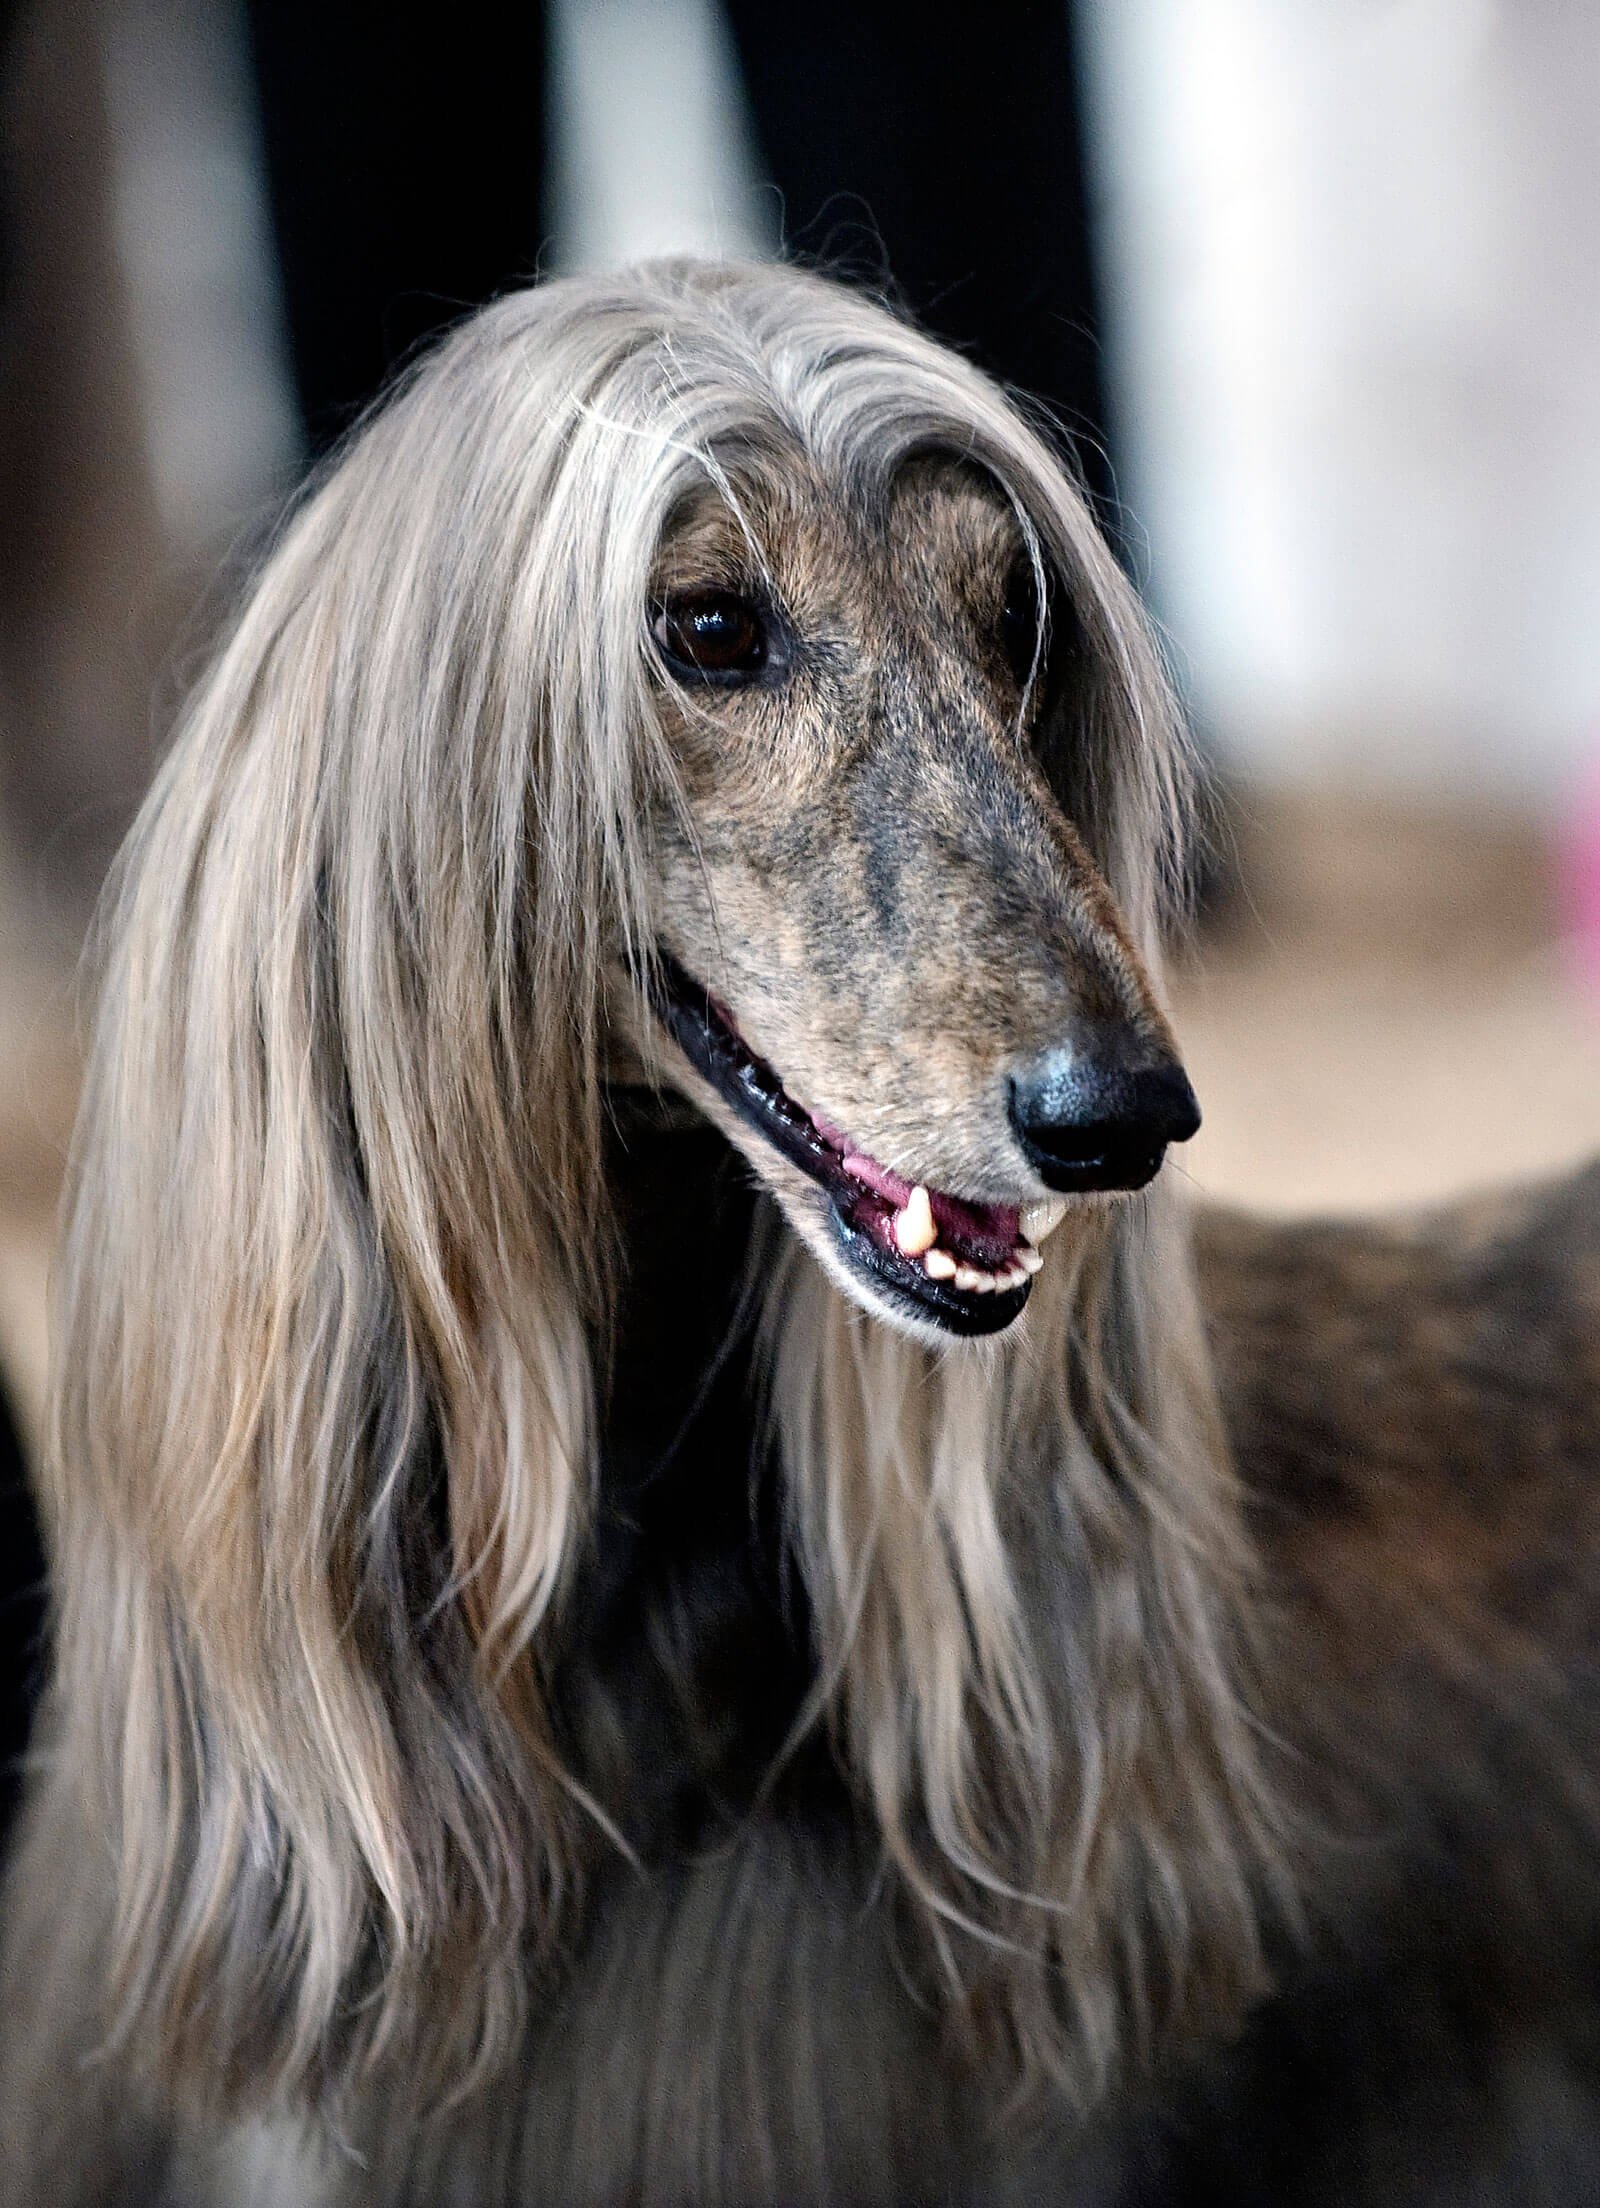 Afghan Hound Dog Breed » Information, Pictures, & More